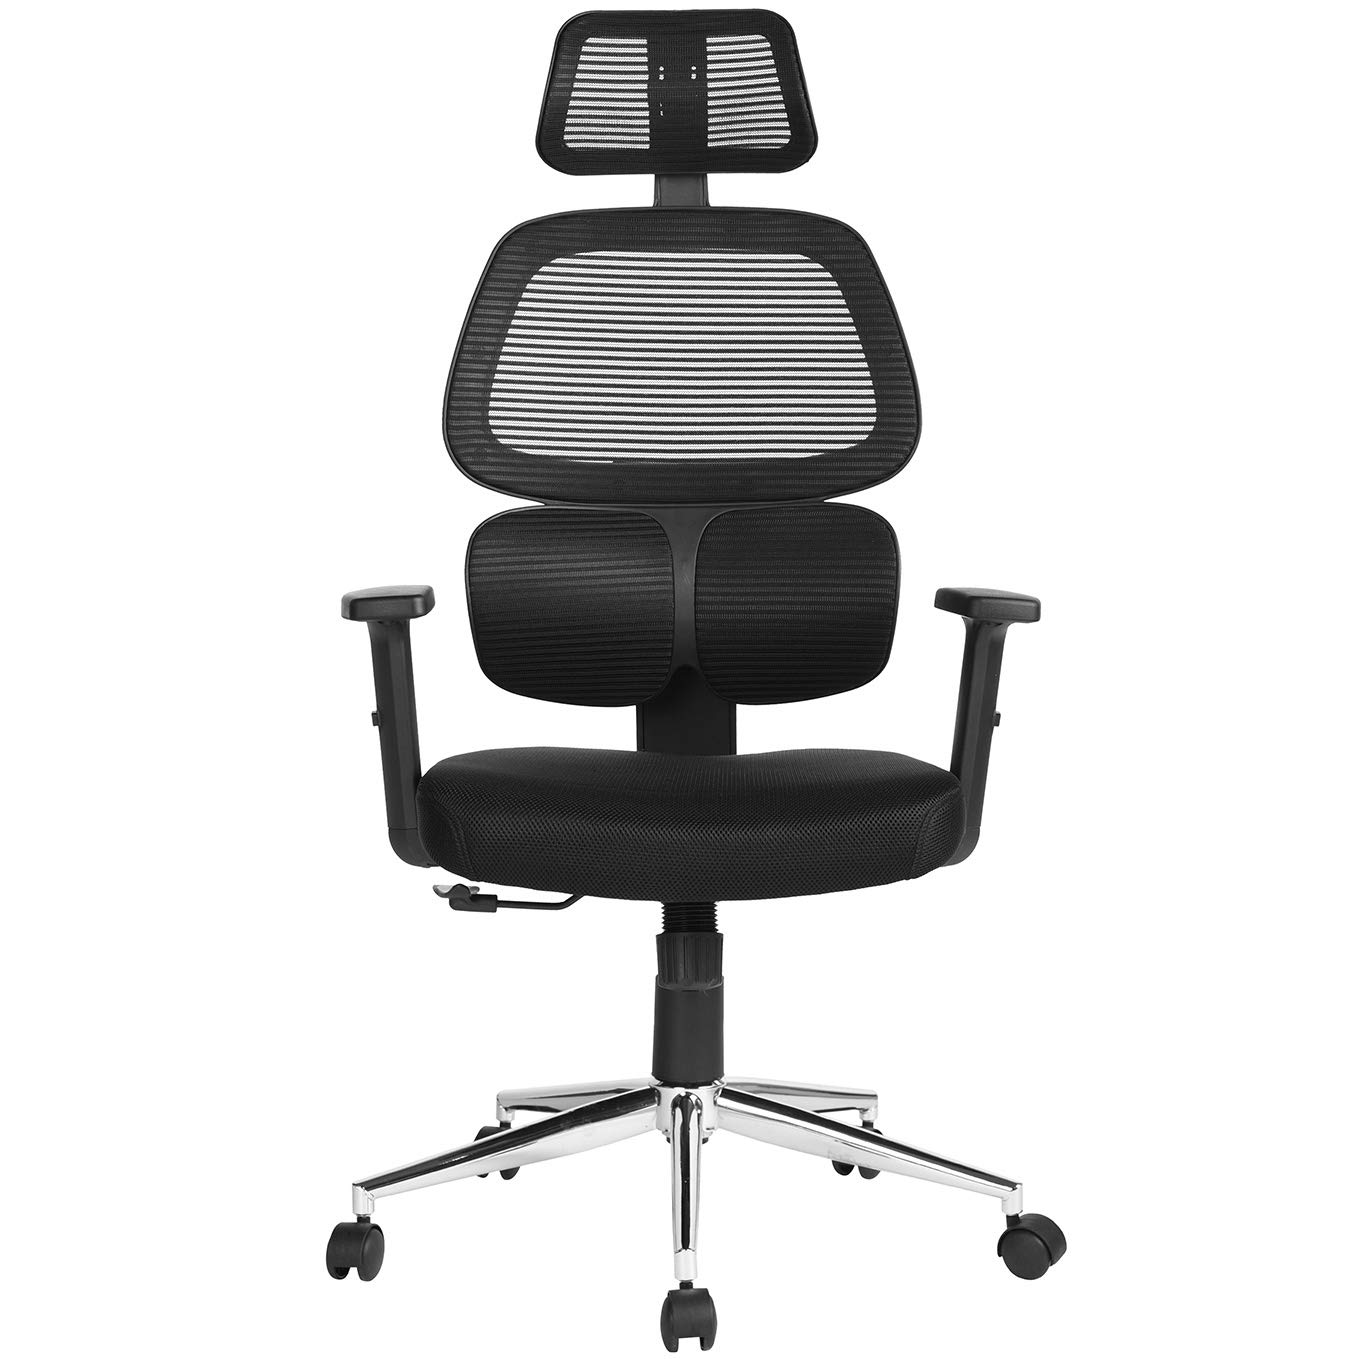 Amazoncom Ergonomic Office Chair Mesh Computer Desk Chair High